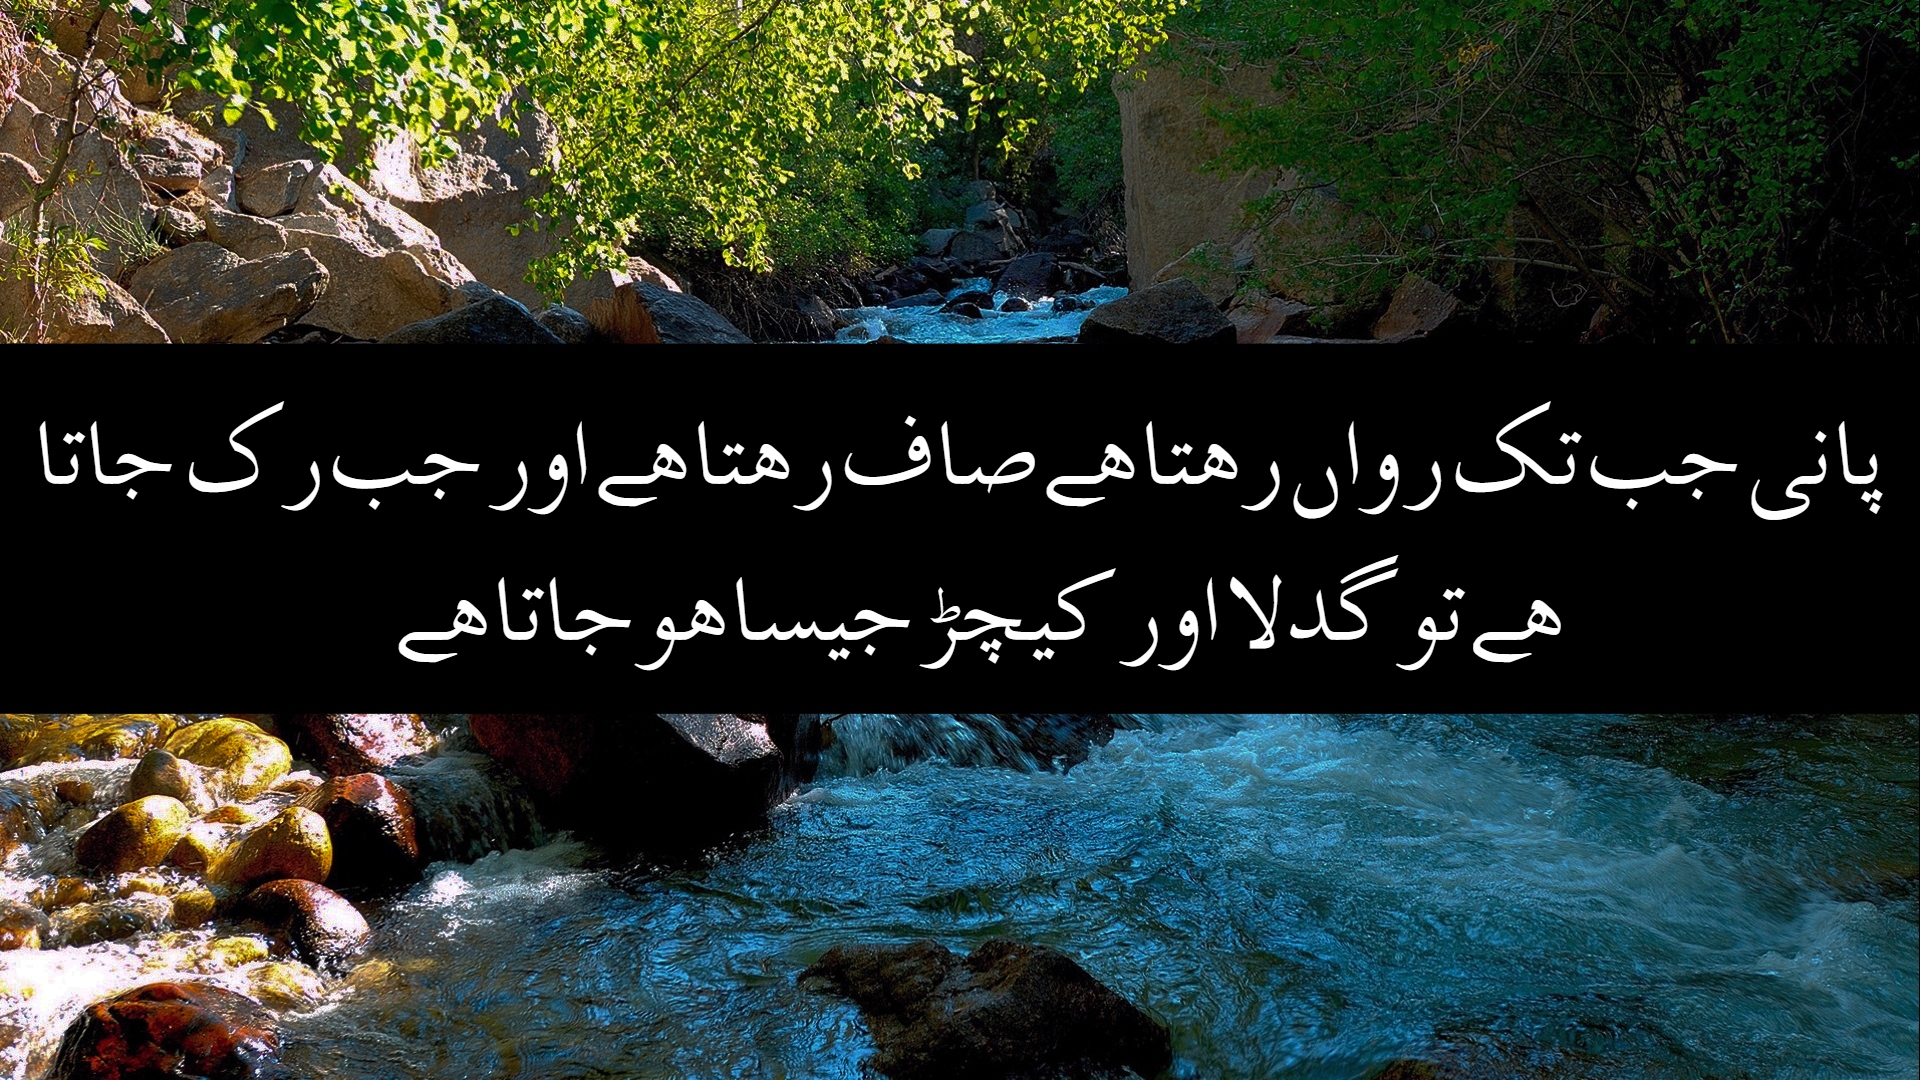 100 Inspirational Islamic Quotes In Urdu Life Changing Quotes In Urdu